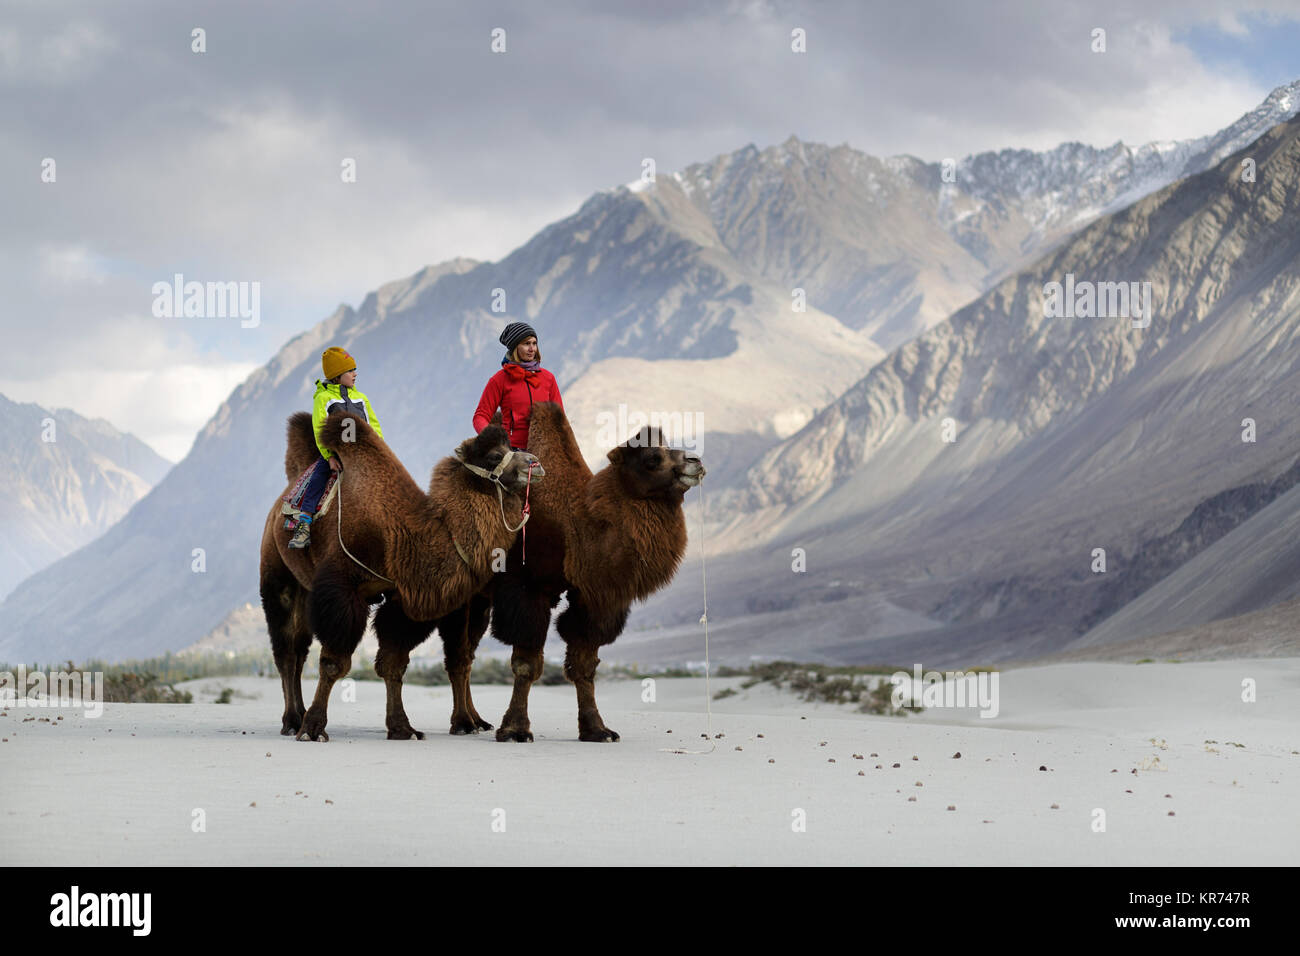 Mother and son riding double hump camels and crossing the desert in the Nubra valley, Ladakh, Jammu and Kashmir, - Stock Image